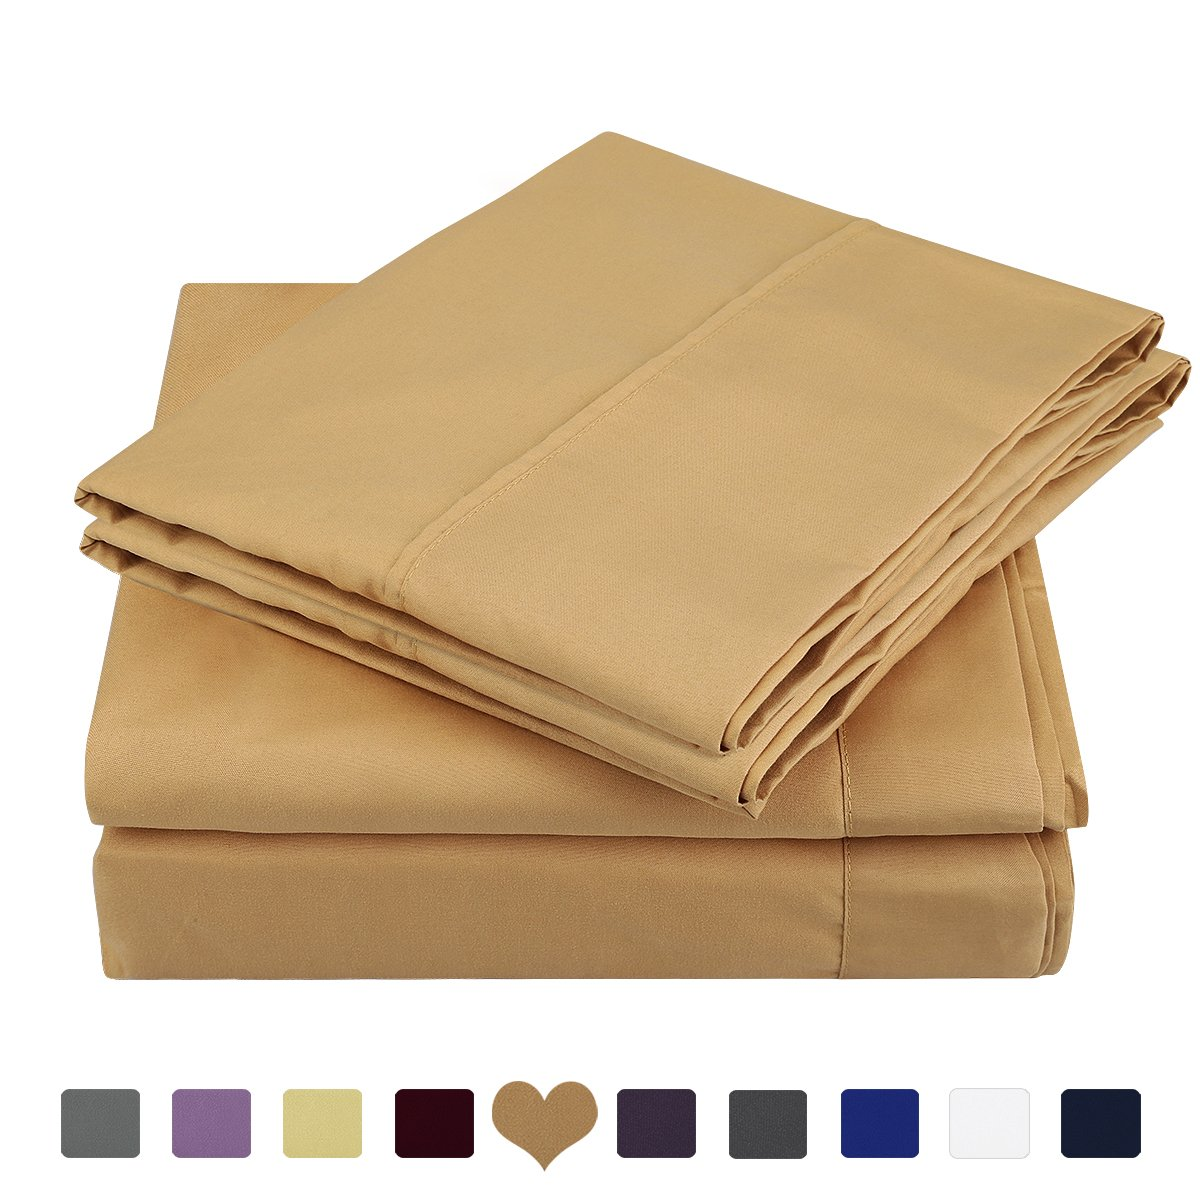 HOMEIDEAS 3 Piece Bed Sheet Set (Twin XL,Gold) 100% Brushed Microfiber 1800 Bedding Sheets Deep Pockets,Wrinkle & Fade Resistant